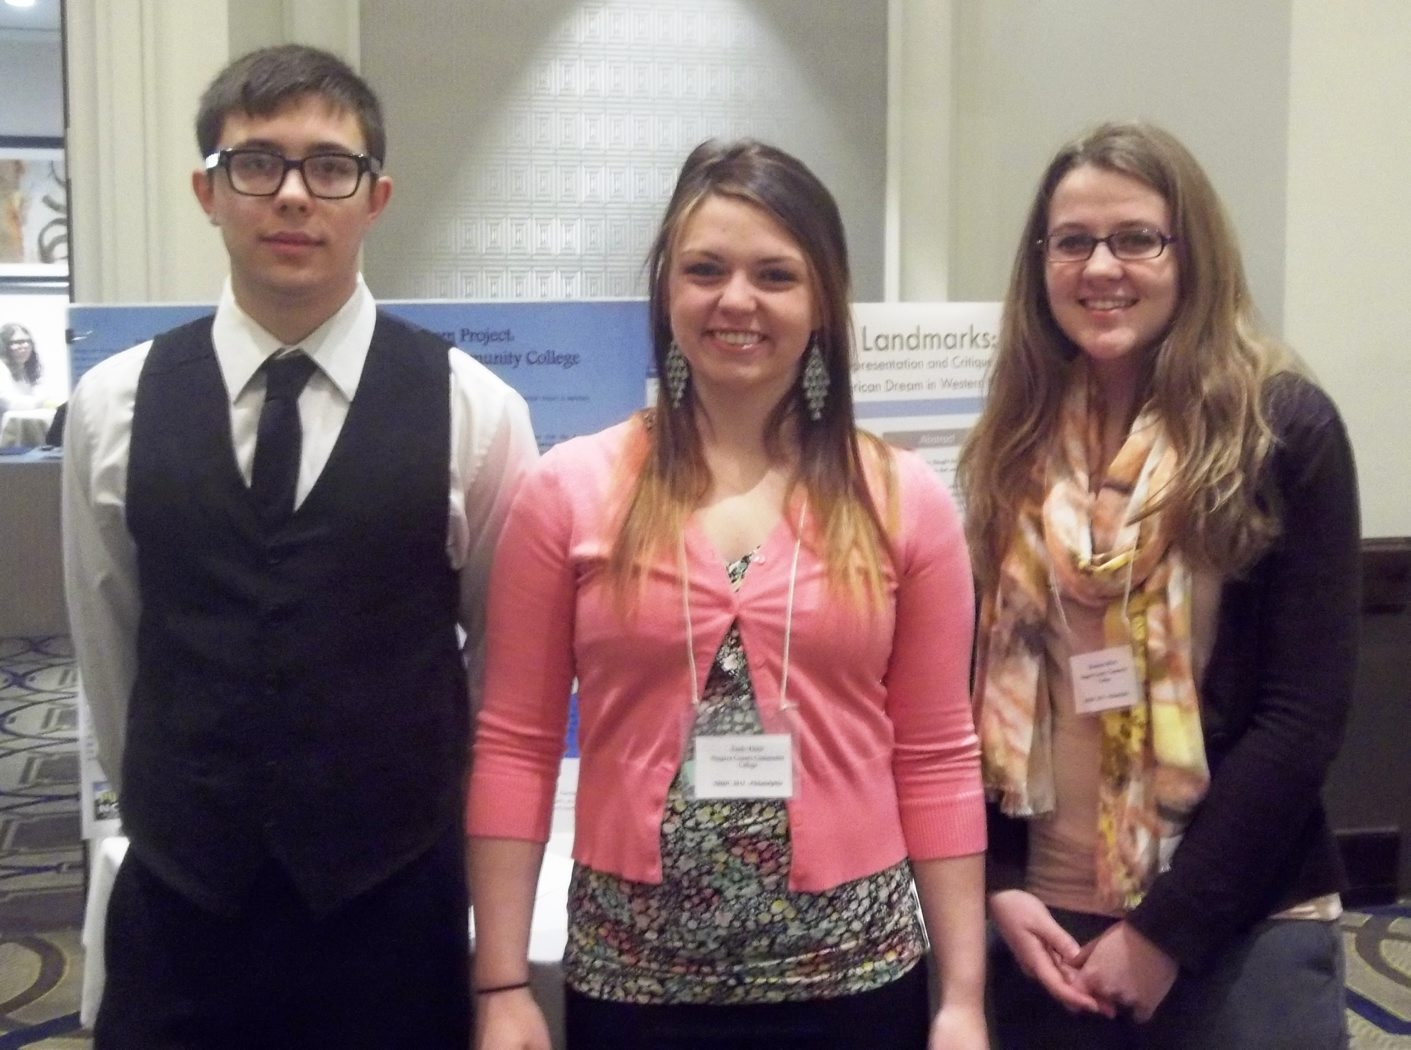 Niagara County Community College students Dakota Reynolds of Niagara Falls, Emily Thiele and Hosanna Gifford of North Tonawanda, participated in the 2013 Northeast Regional Honors Conference in Philadelphia, April 4 – 7.